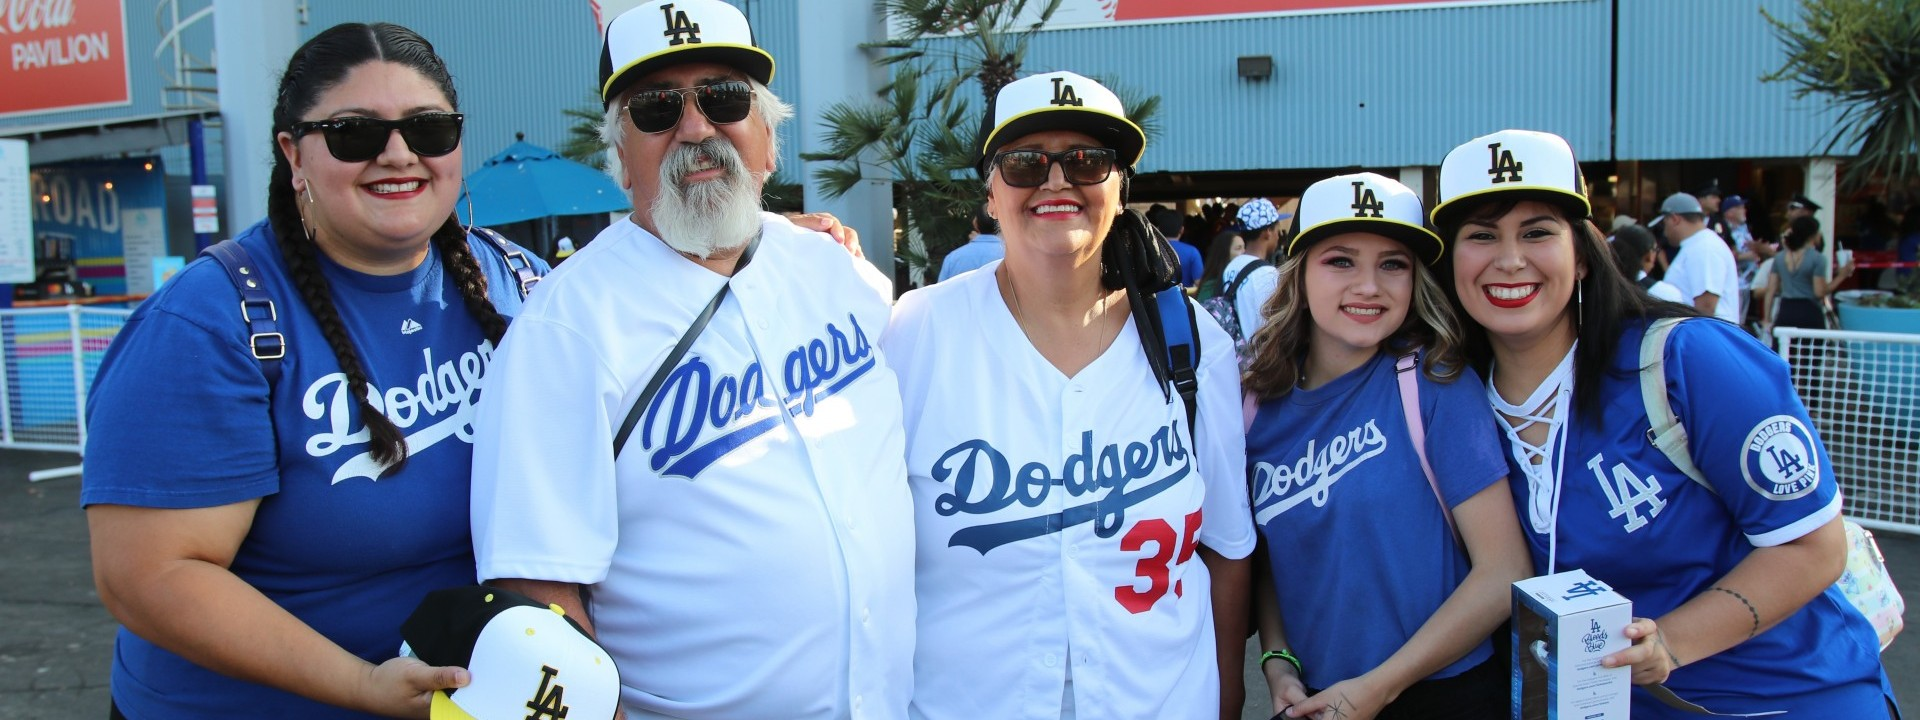 Five people posing with Cal State LA baseball caps at Dodger Stadium